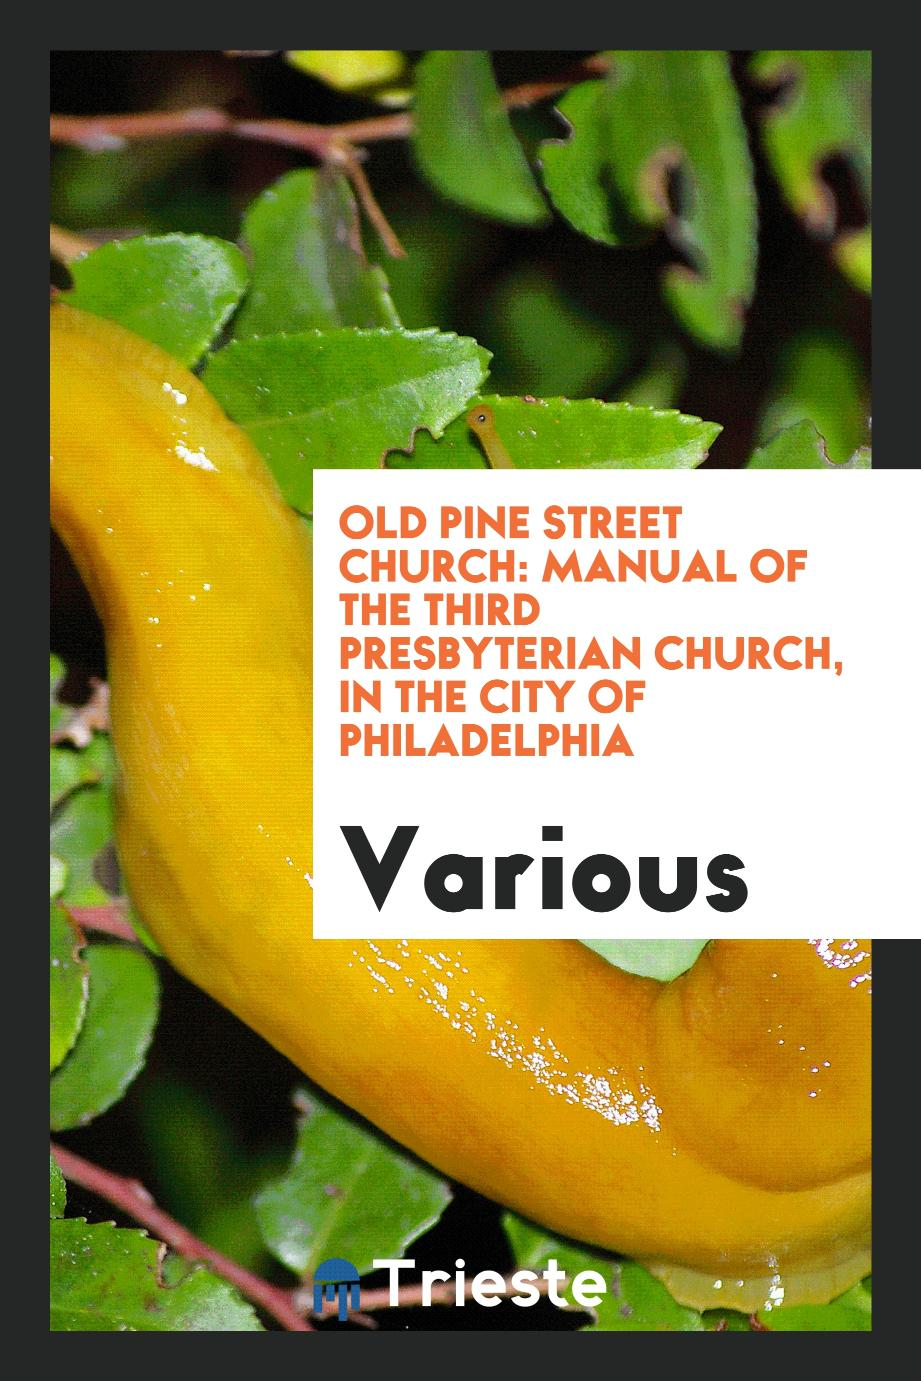 Old Pine Street Church: Manual of the Third Presbyterian Church, in the City of Philadelphia